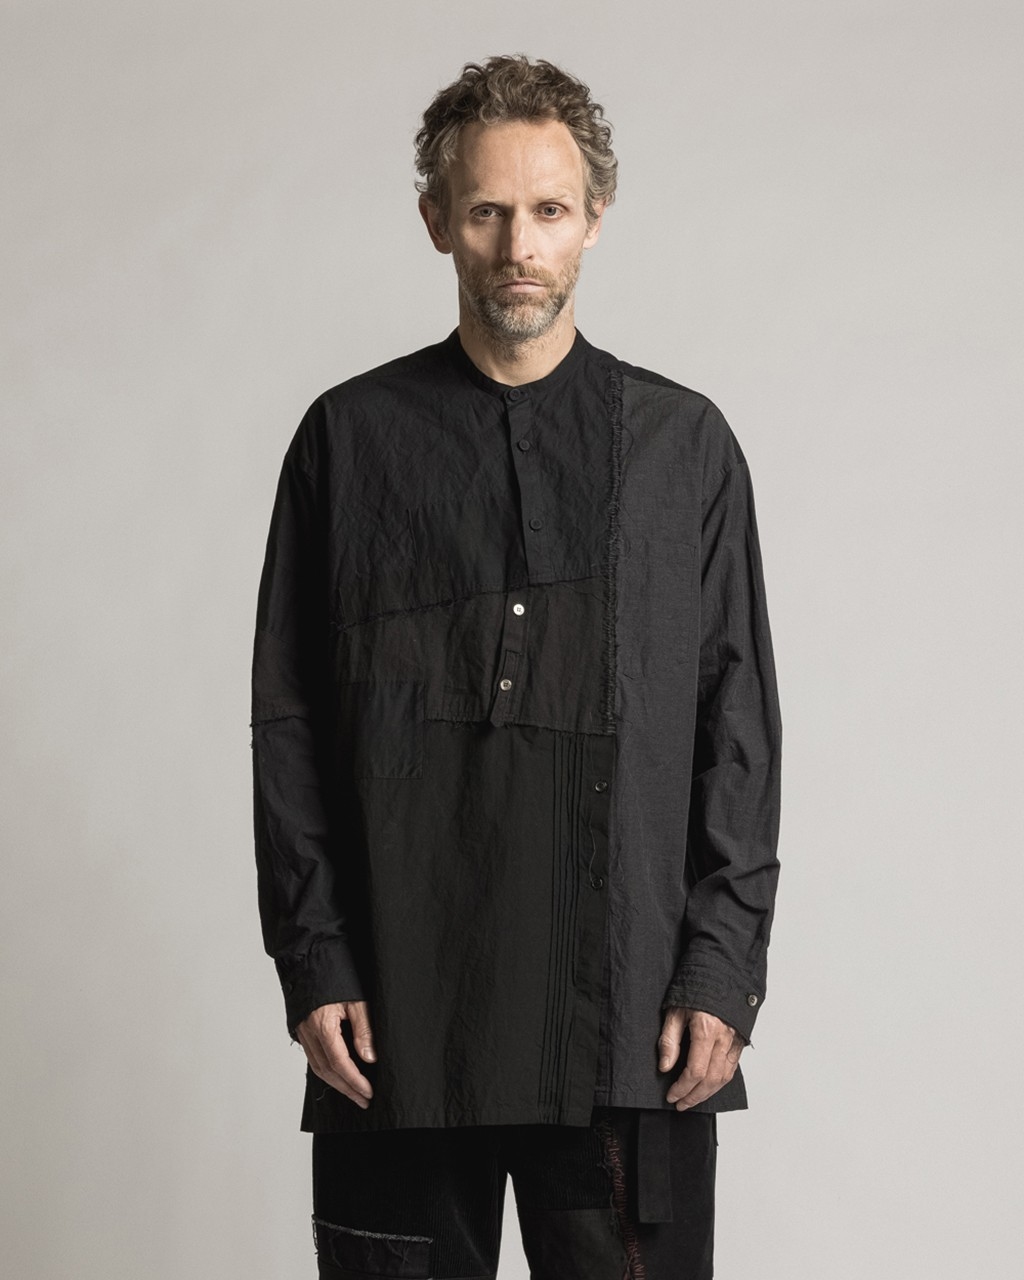 21AW DUE-Ⅲ-029-SHT-BLK Collage Shirt